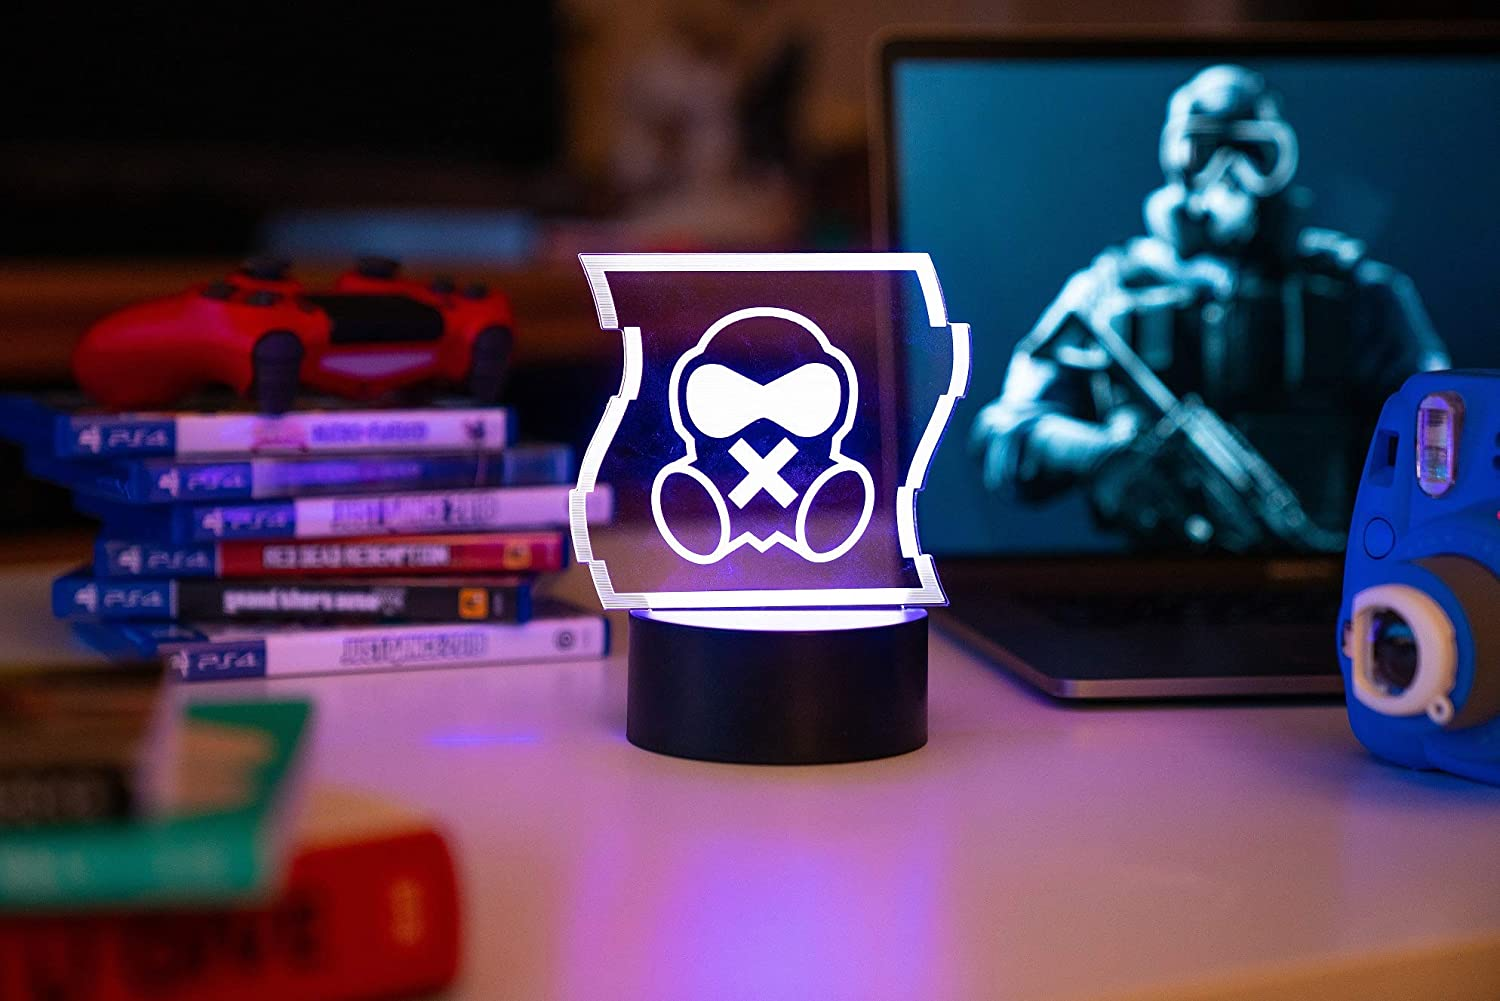 Six Siege LED Lamp - Mute Operator - Home Decor Light for Gaming Den of Rainbow Six Siege Players and Cosplayers